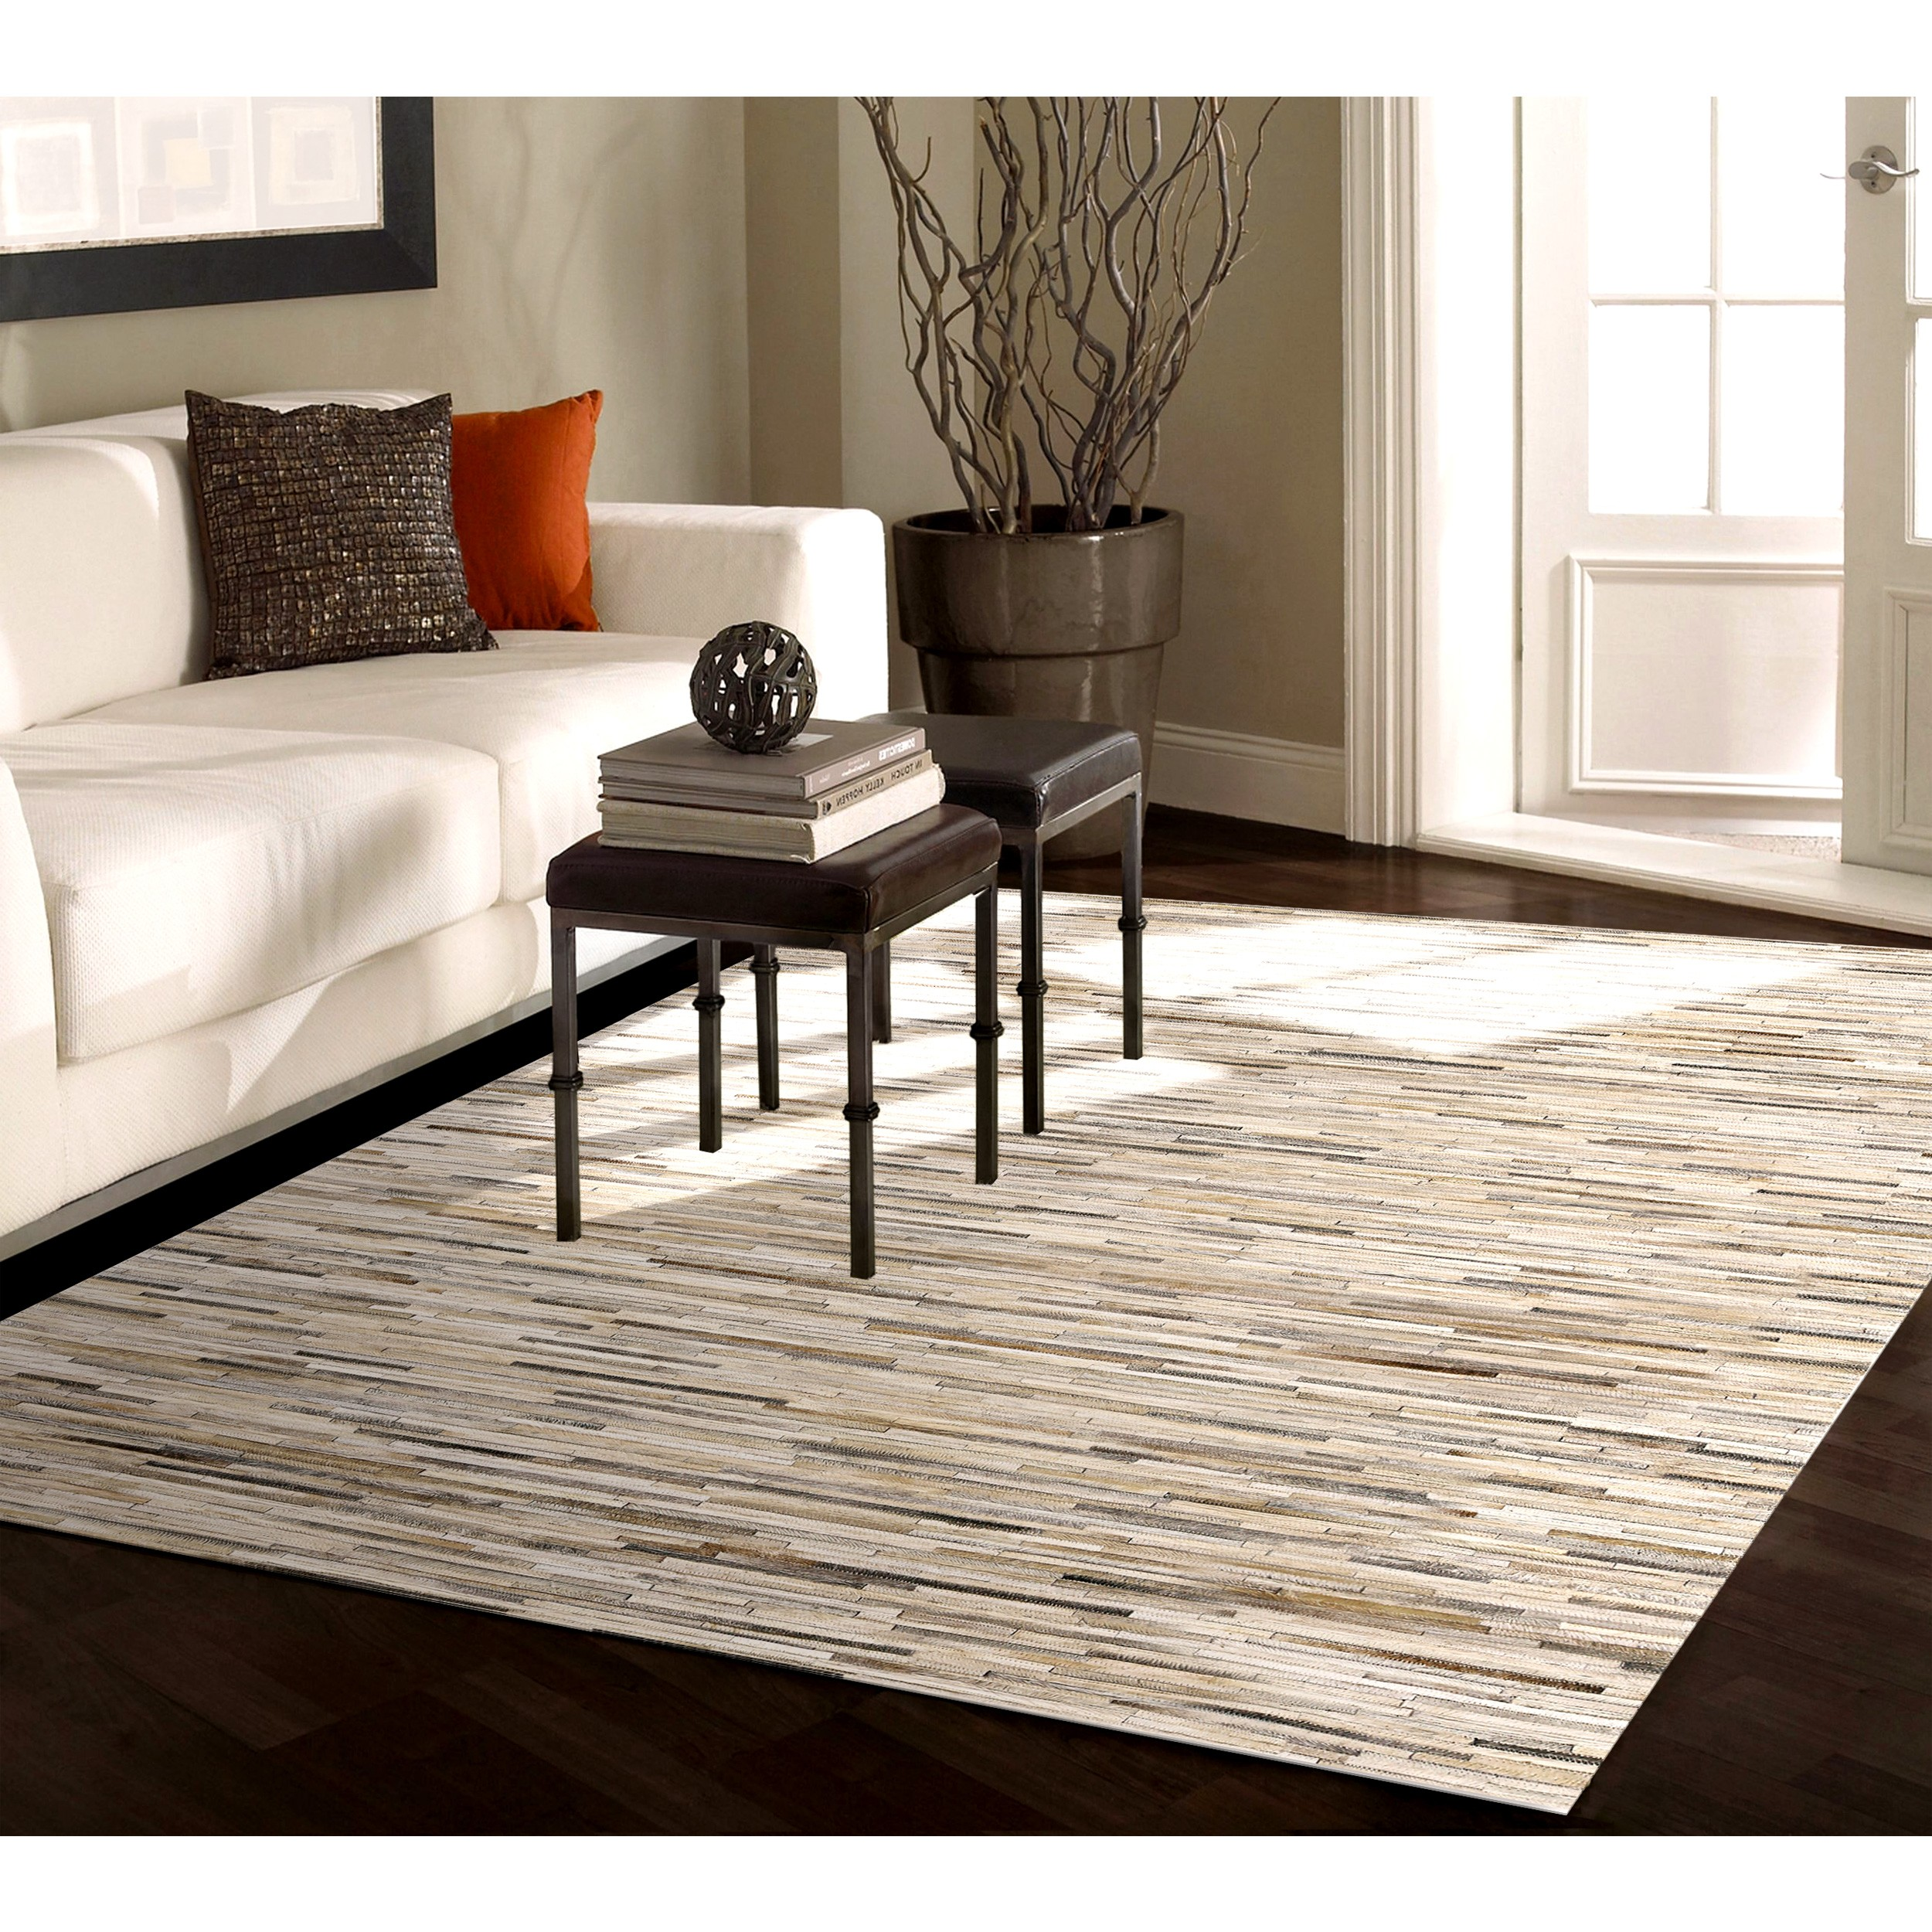 tapis cuir shahrukh beige 200x300 cm retrouvez nos tapis cuir shahrukh beige 200x300 cm design. Black Bedroom Furniture Sets. Home Design Ideas